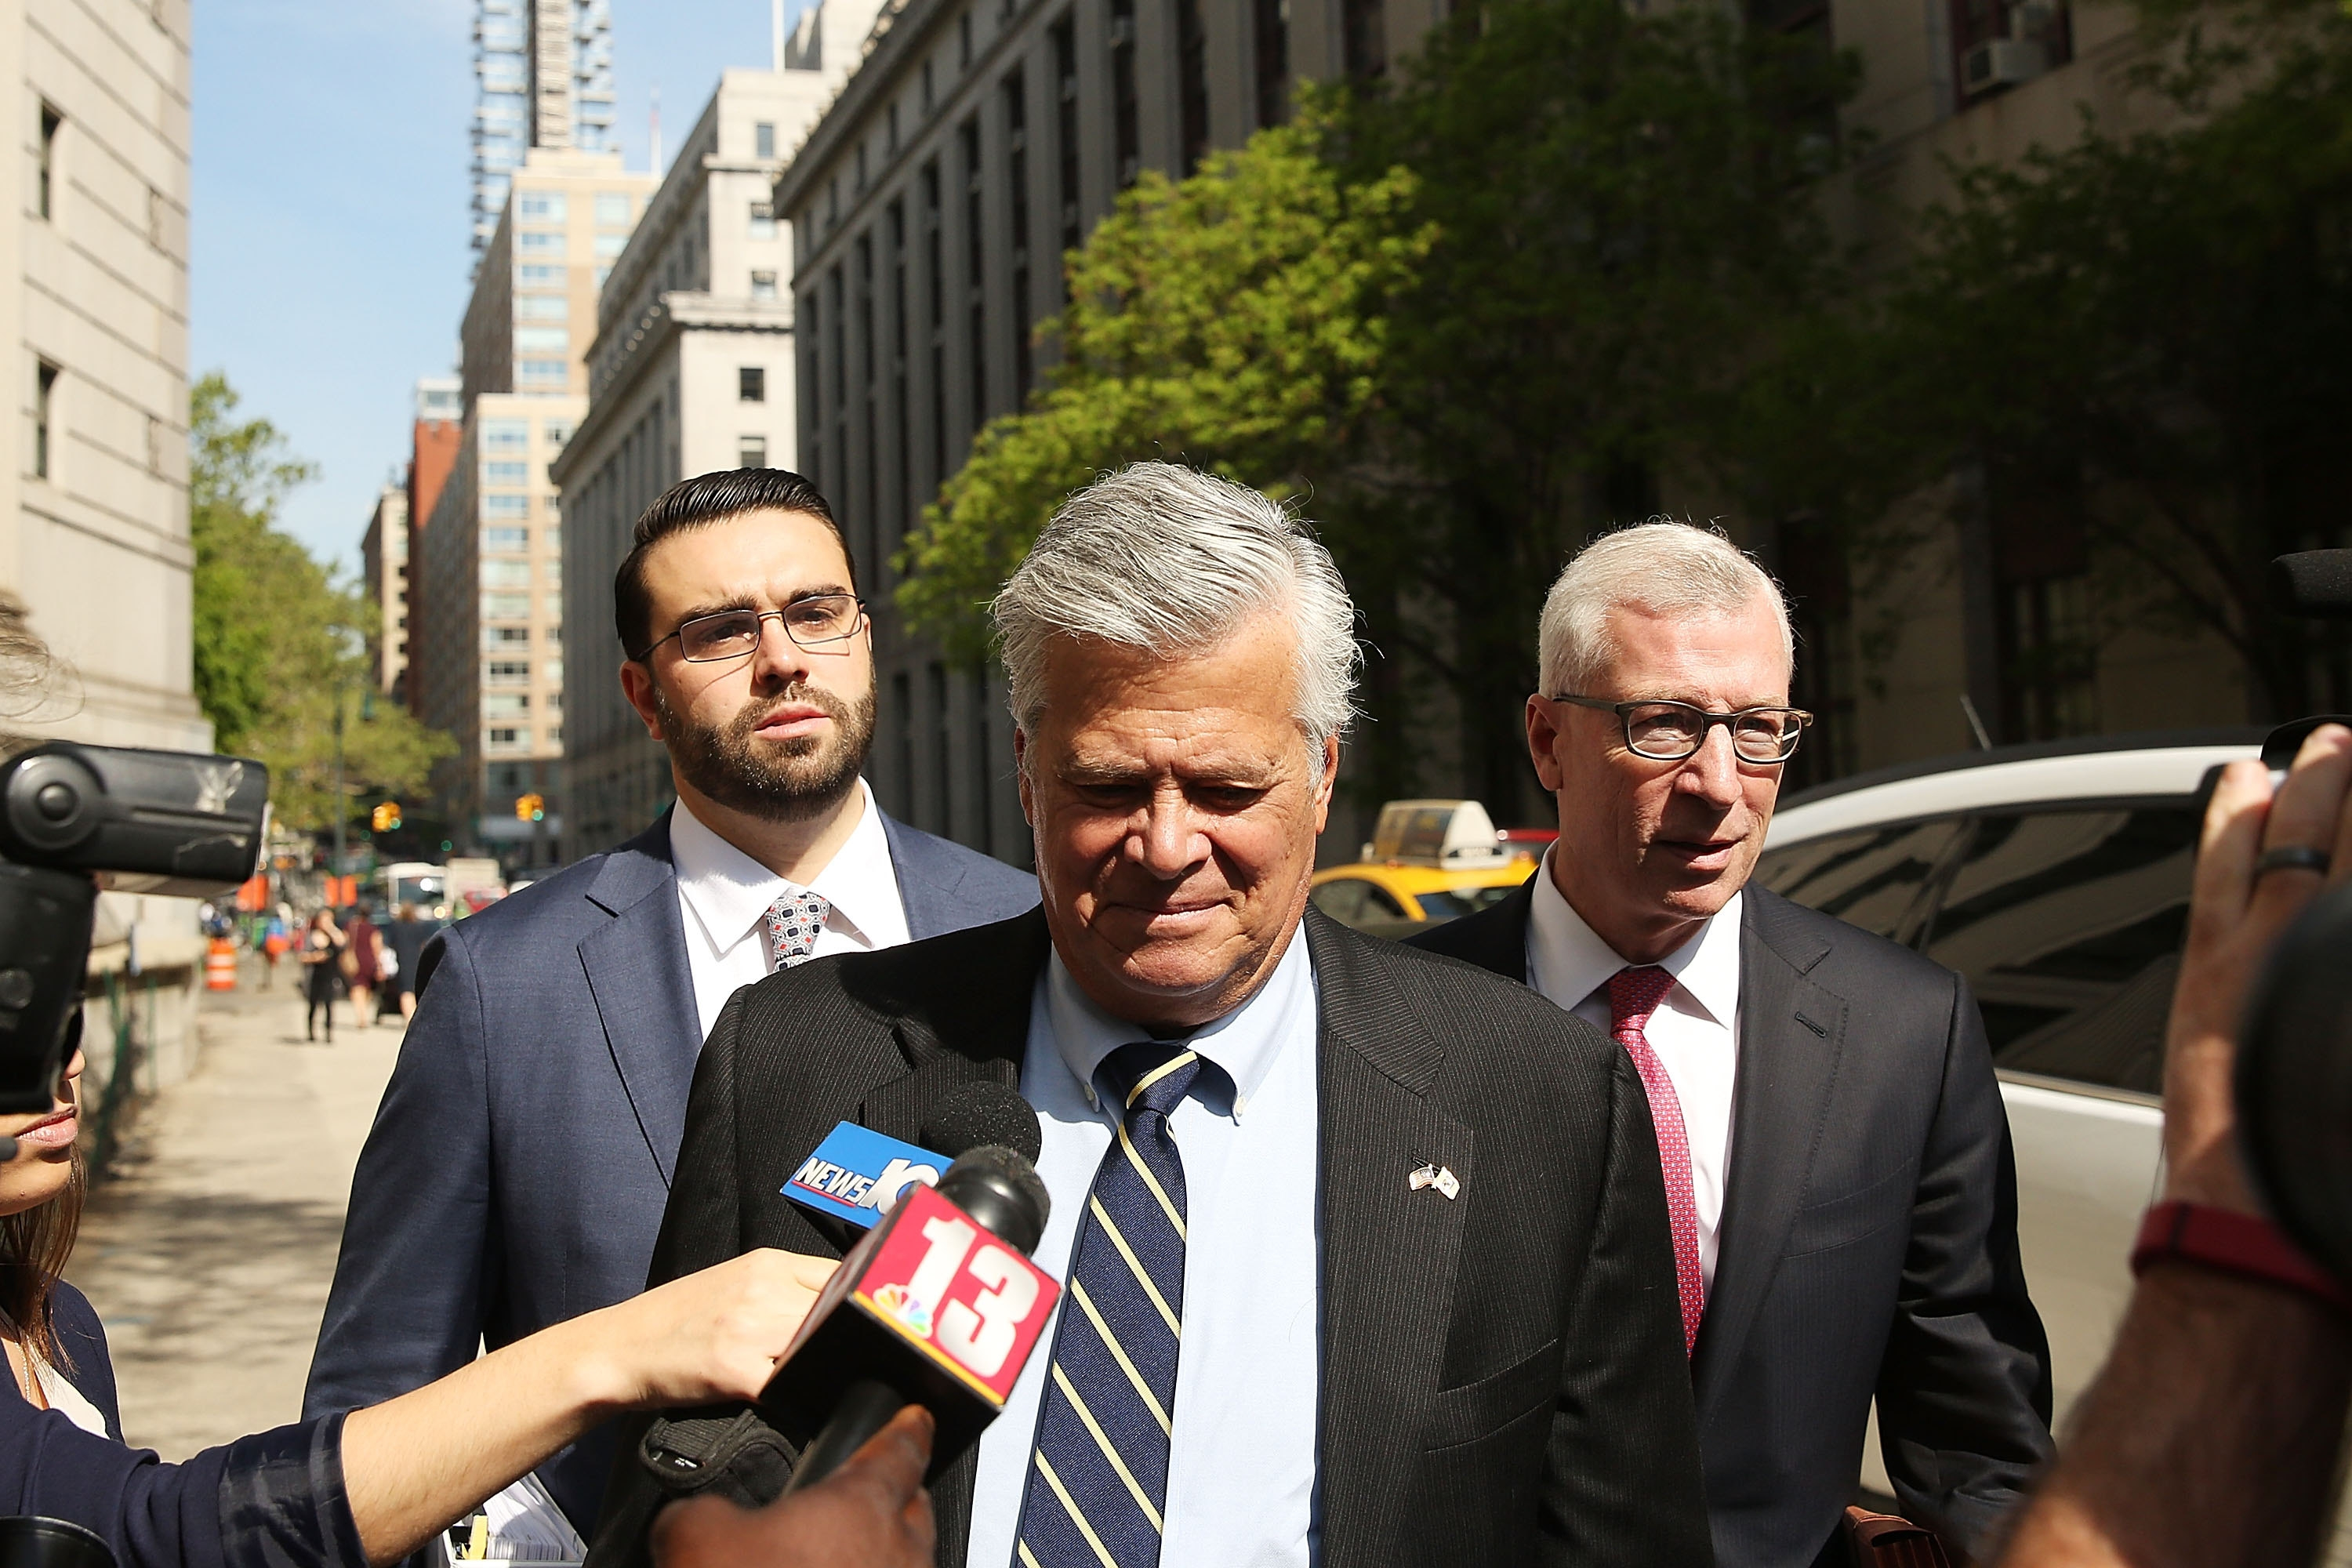 Former New York State Senate Majority Leader Dean Skelos walks into a Manhattan court for his sentencing on May 12, 2016.  (Getty Images)